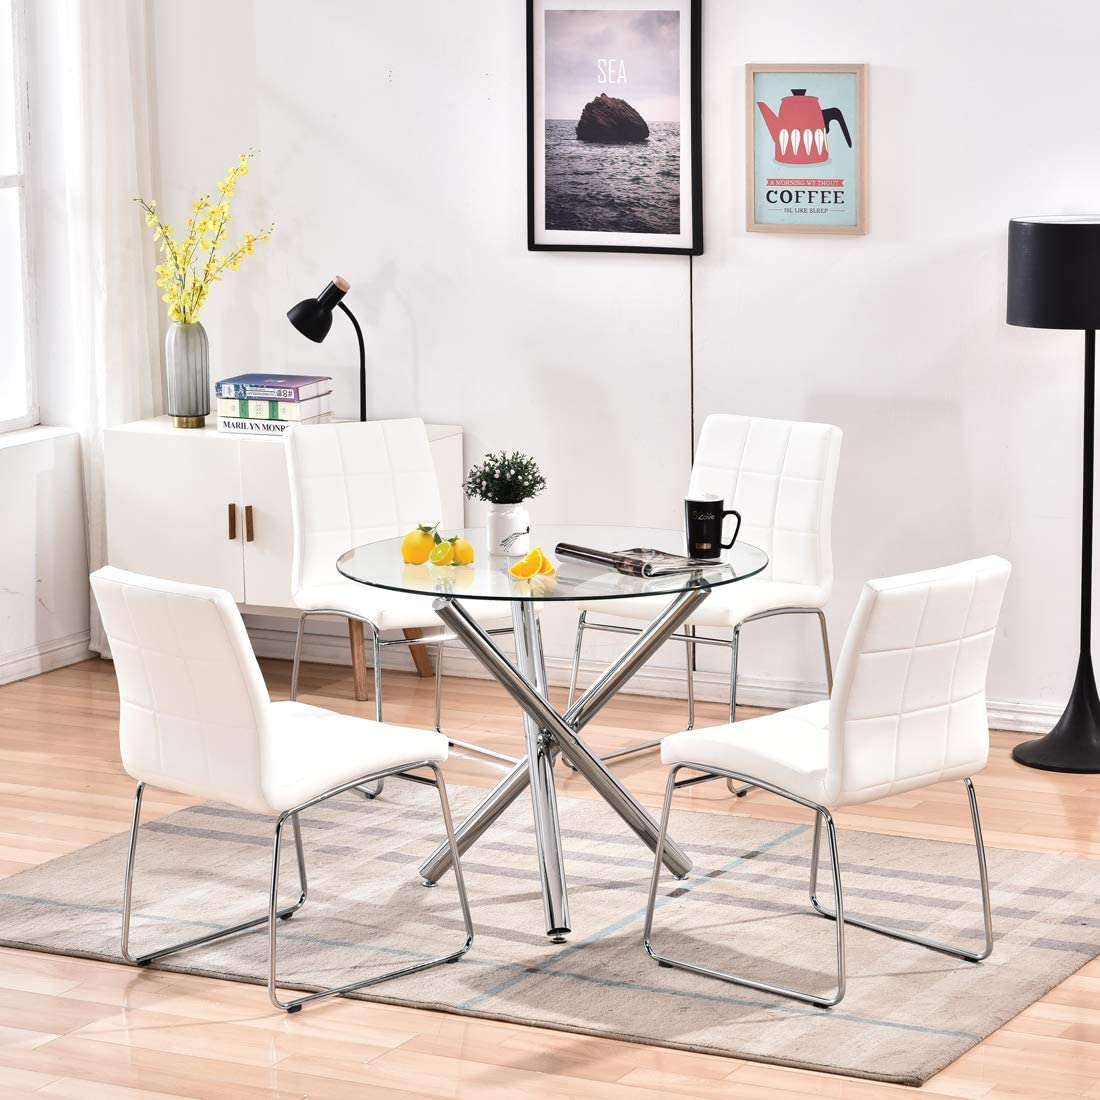 Buy Modern Dining Table Chairs Set,Round Table with Clear Tempered Glass Top+4 White Faux Leather Dining Chairs Set for 4 Person,Kitchen Dining Room Table and Chairs Set for Home(1 Table + 4